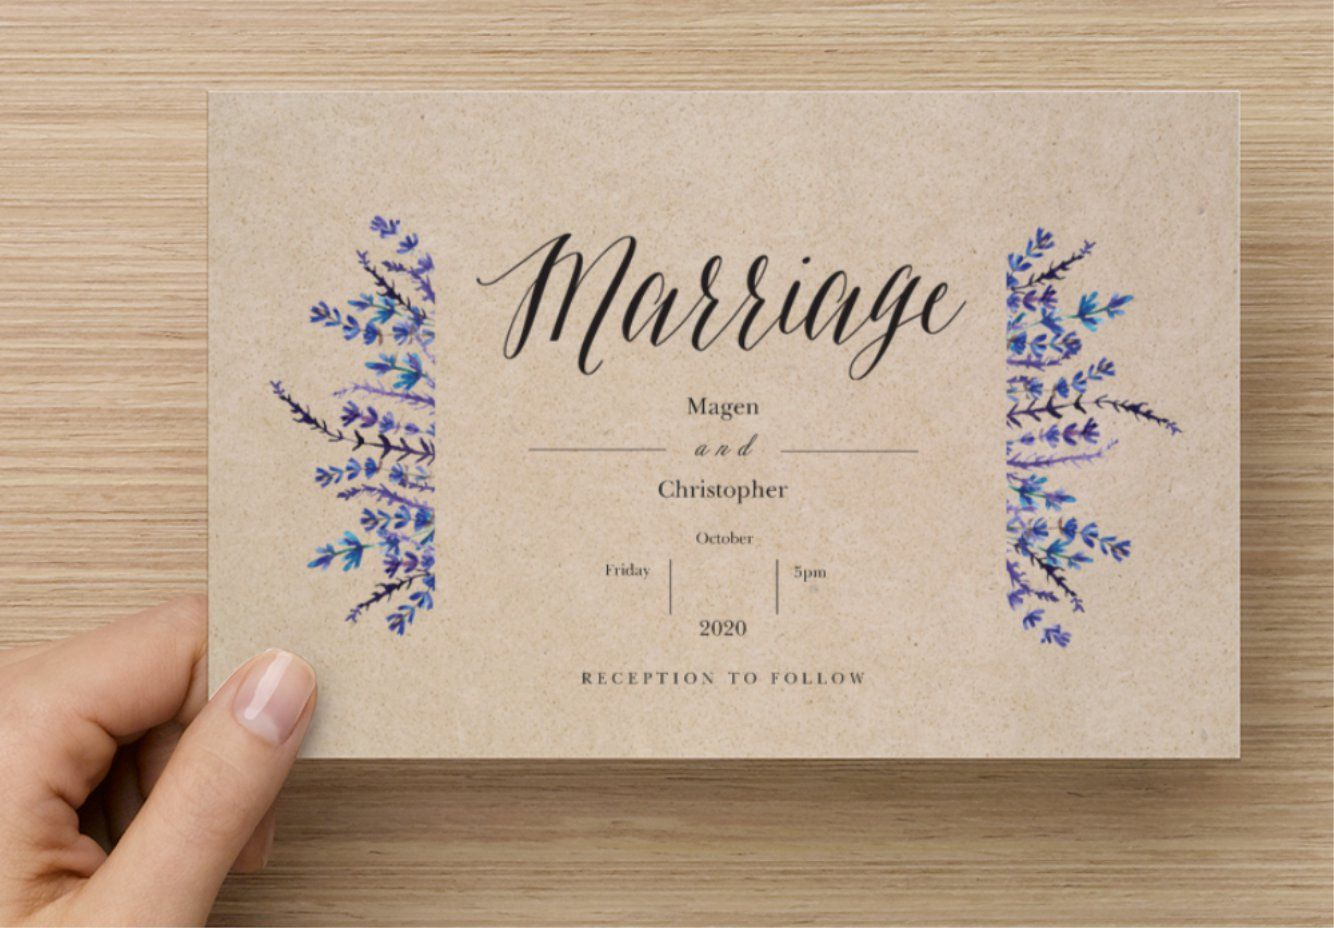 Review Your Design (With images) Our wedding, Marriage